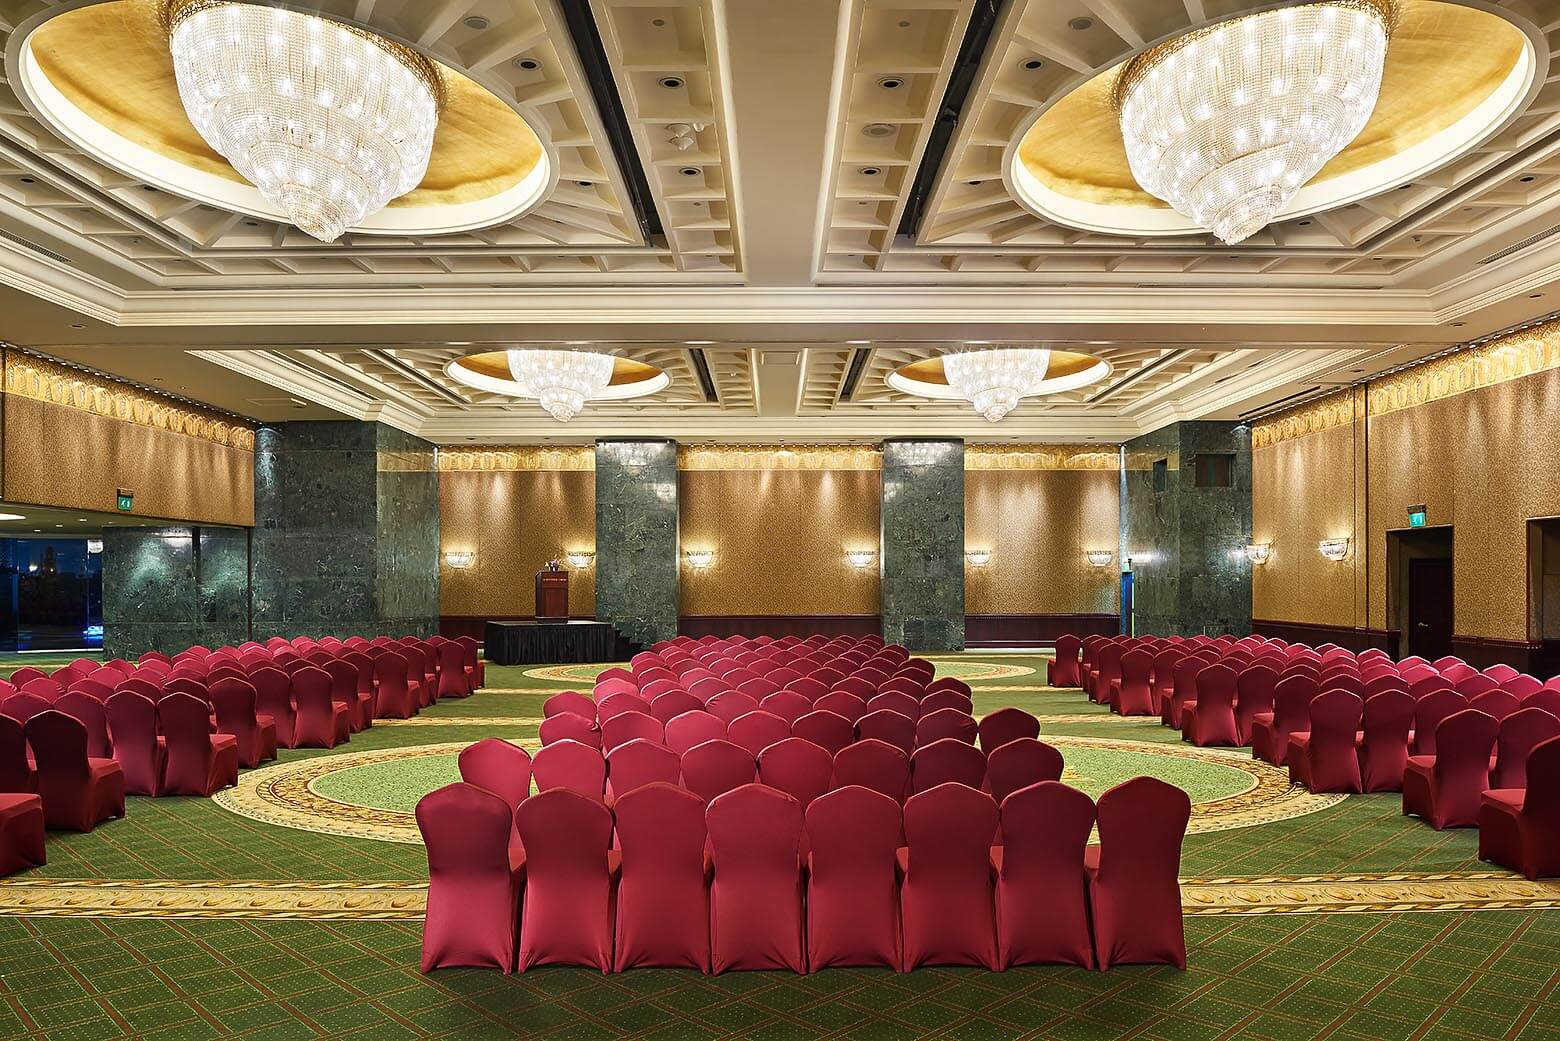 Farhaty ballroom Theater style - Grand Nile Tower hotel